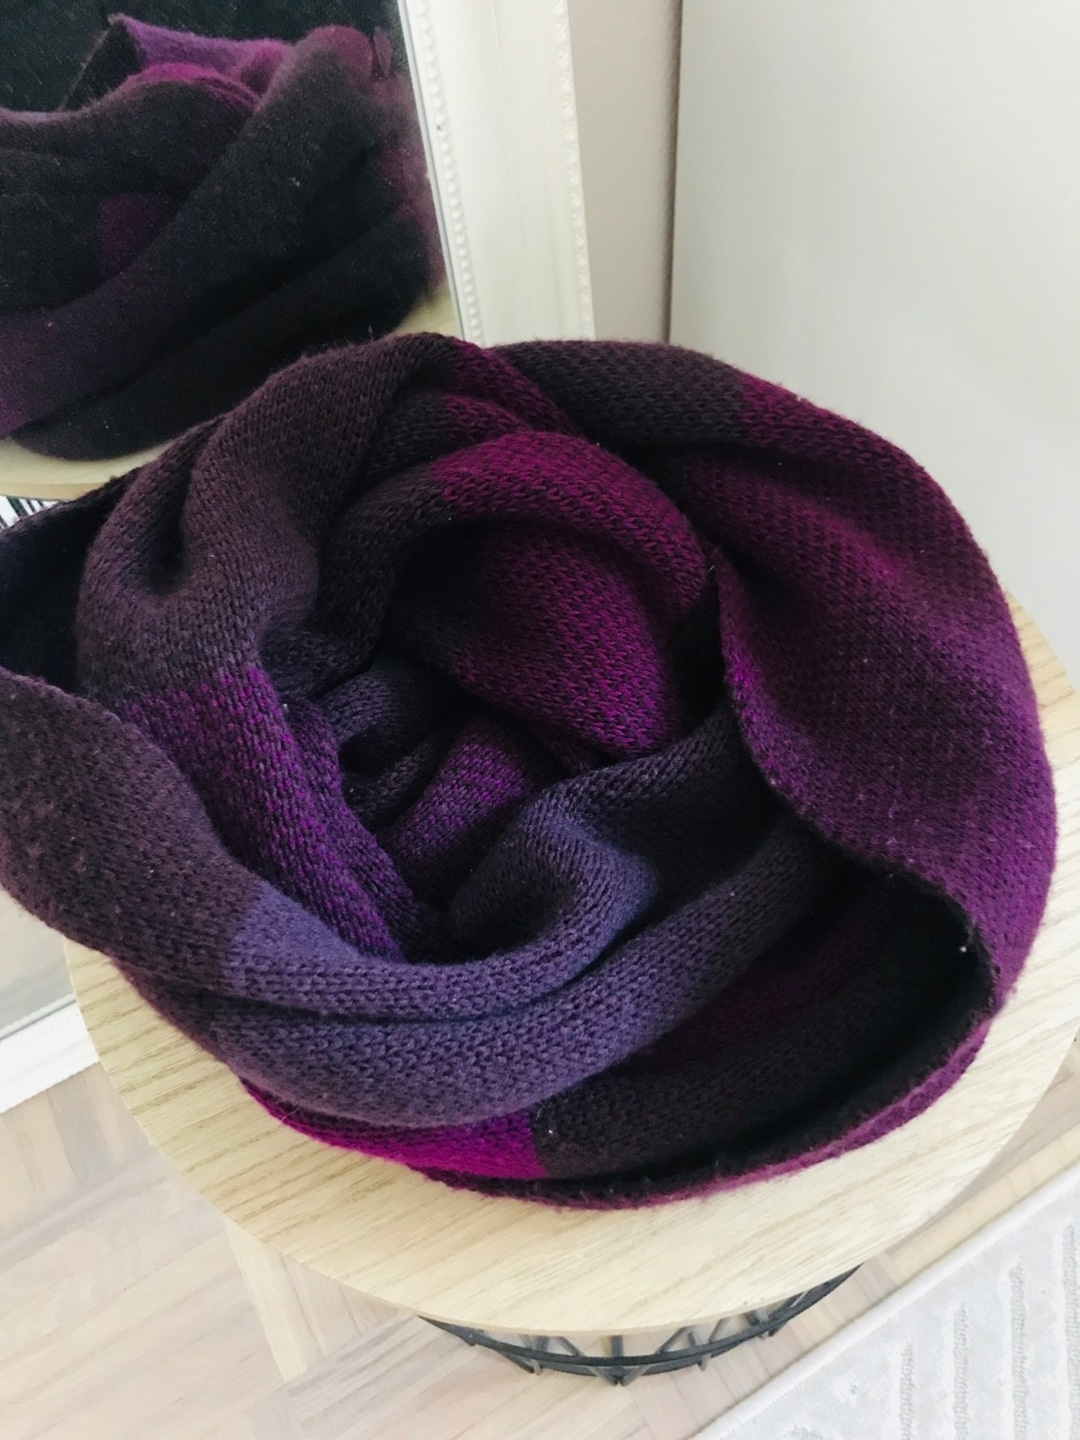 Women's scarves & shawls - GINA TRICOT photo 3